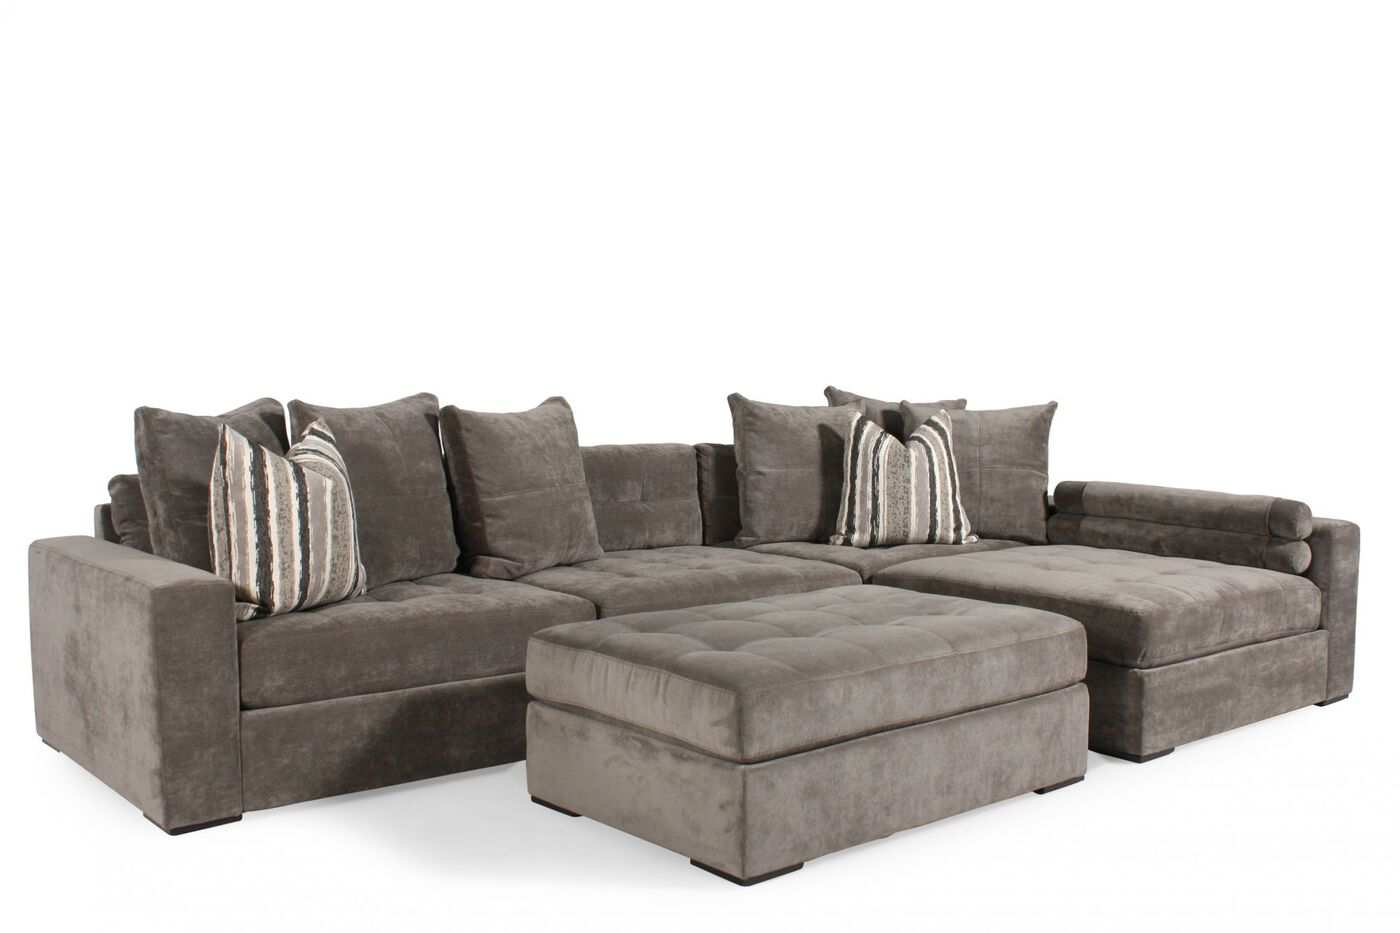 Contemporary Tufted Sectional In Muted Gray Mathis Brothers Furniture